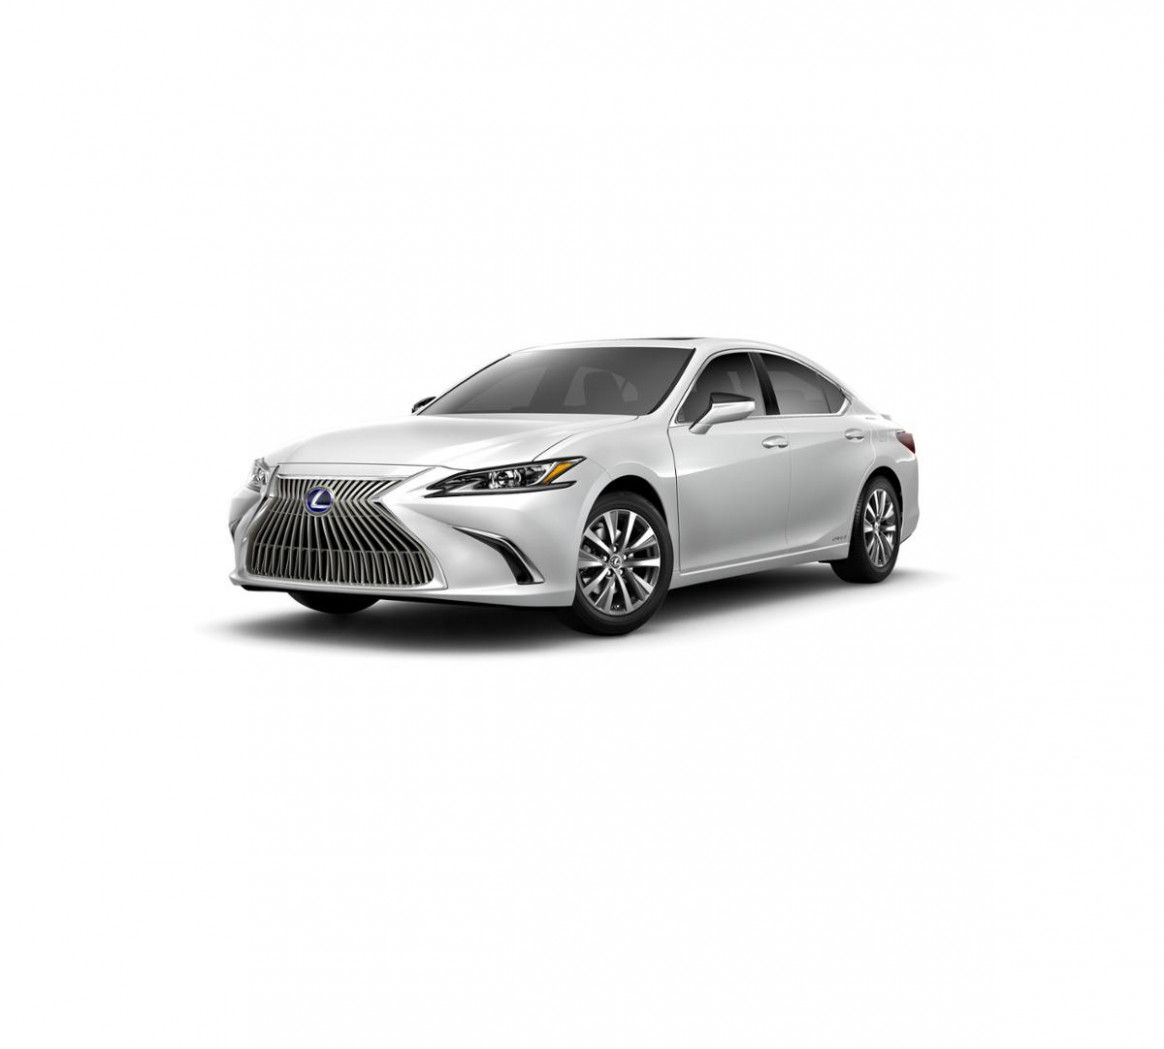 Lexus Es 2020 For Sale History In 2020 Lexus Es Lexus Lexus Dealership